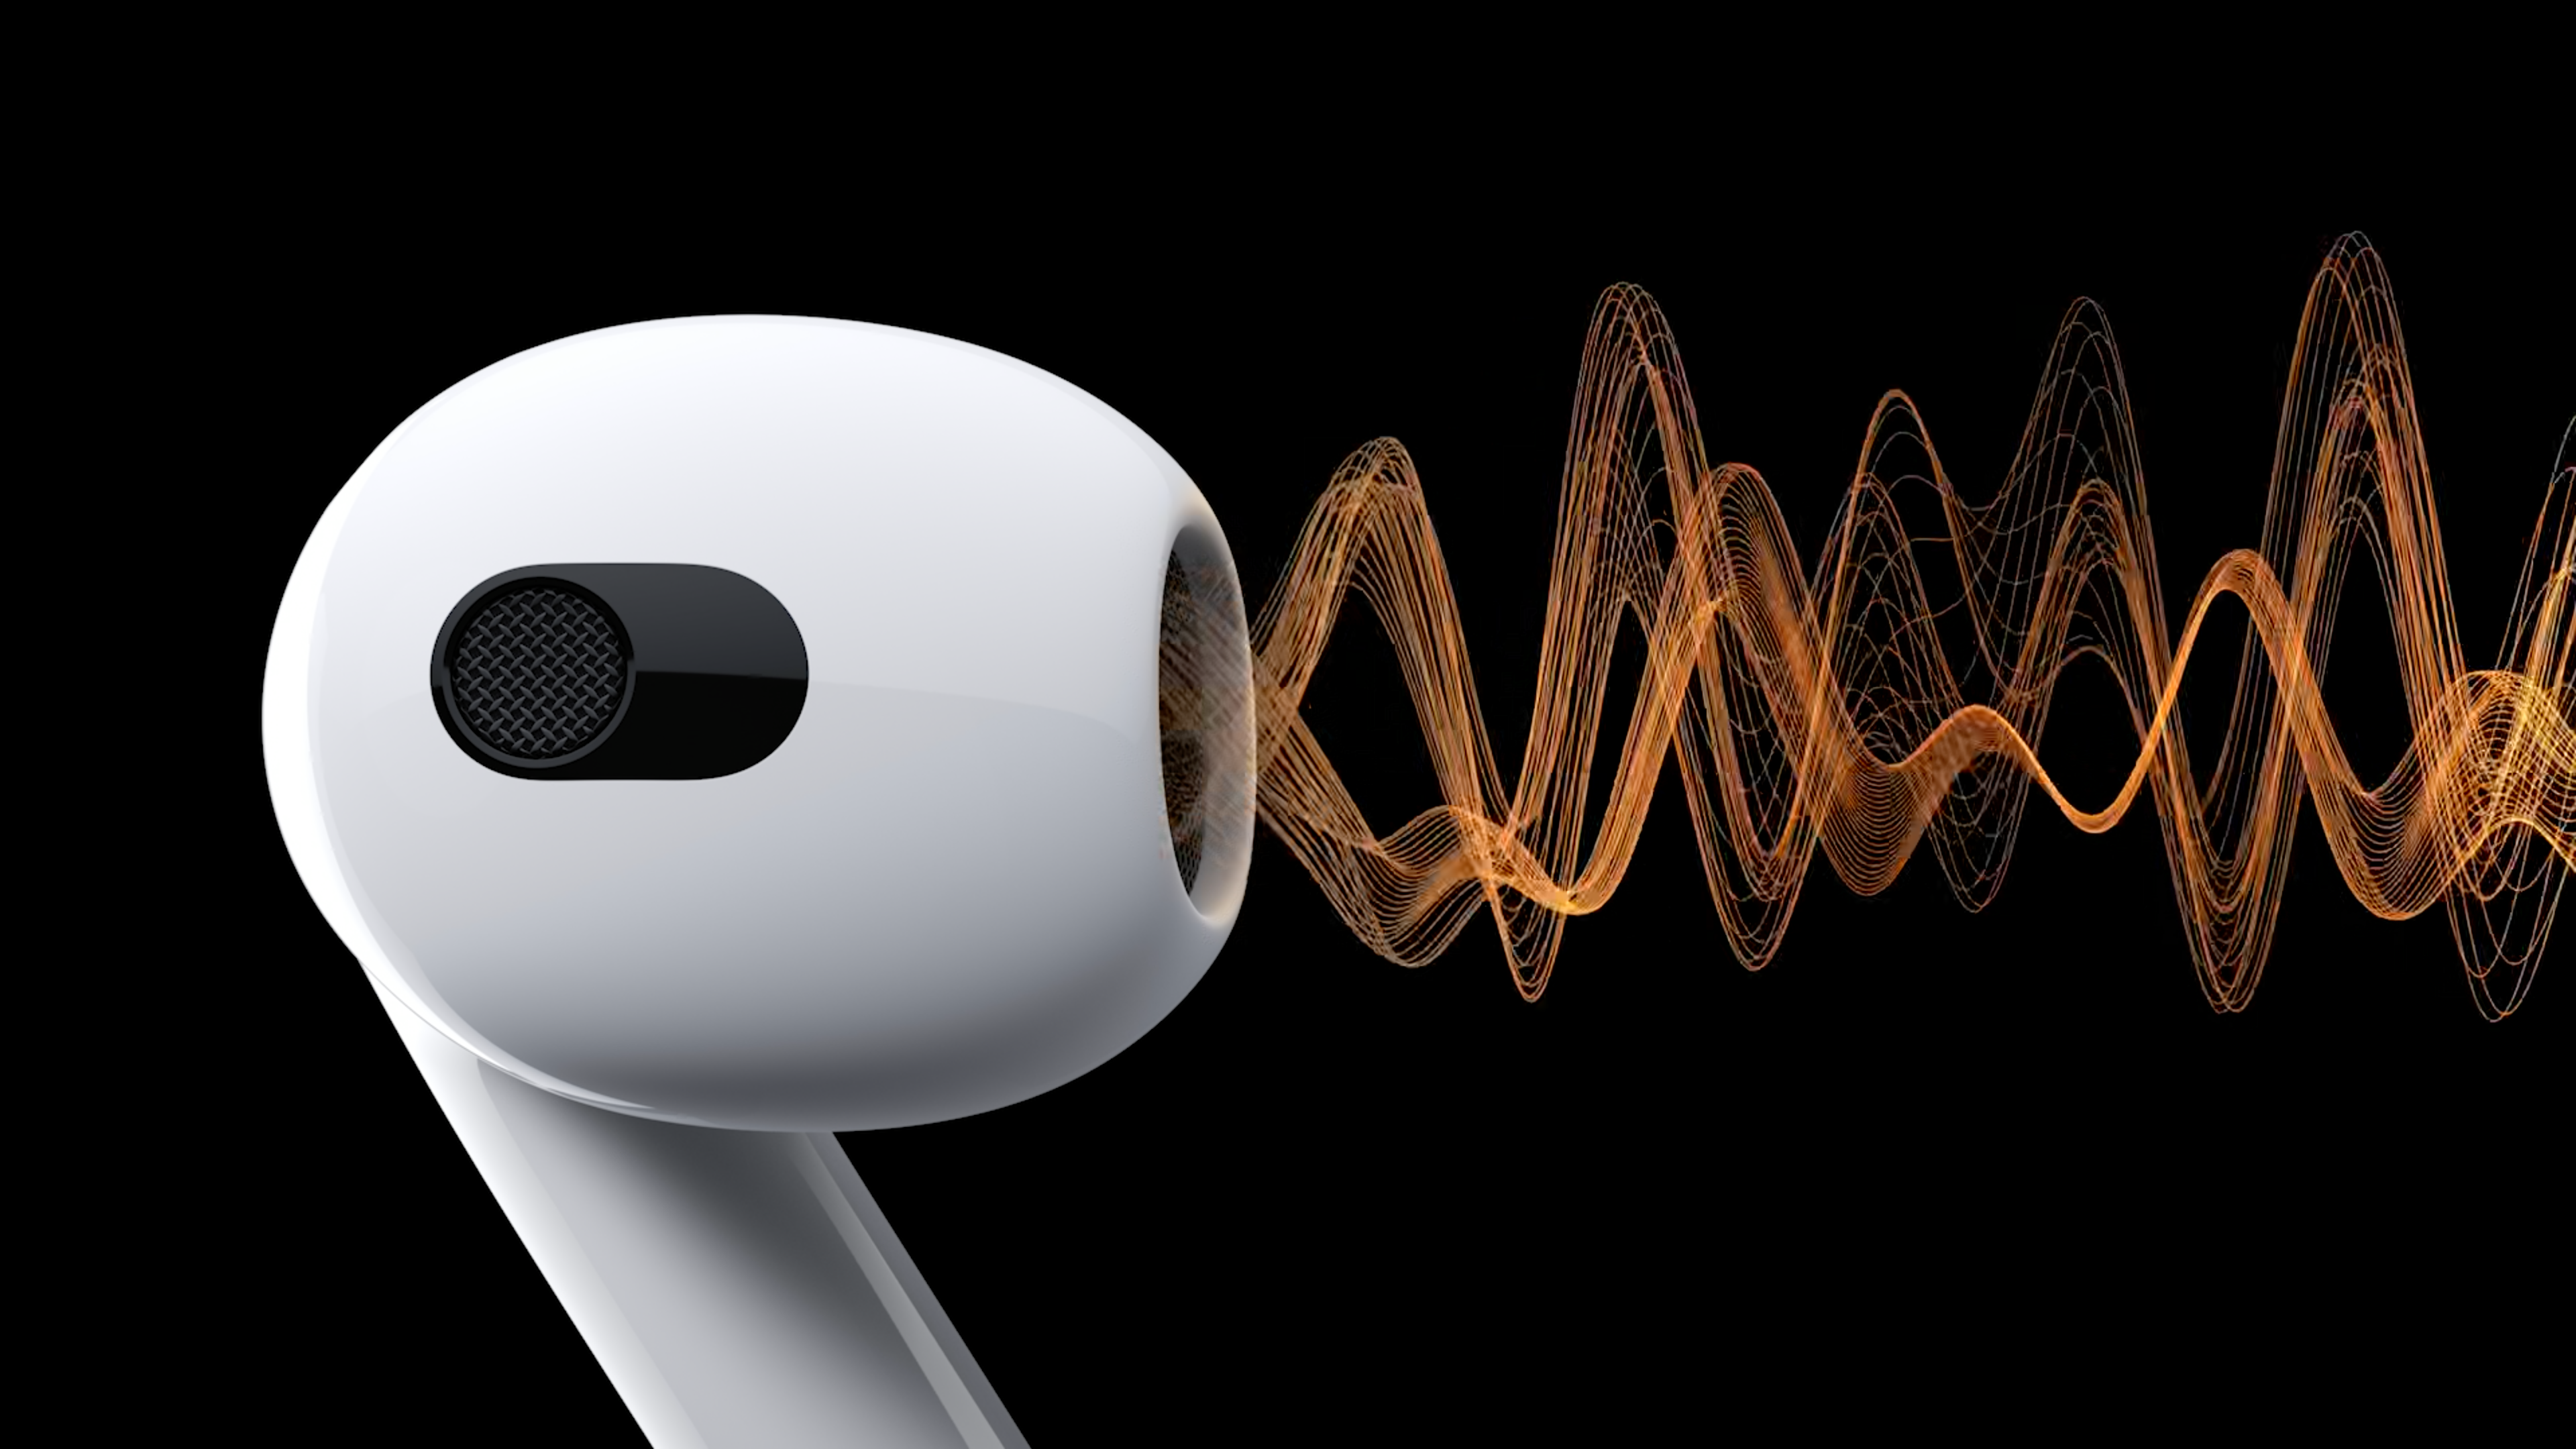 Apple event recap: AirPods 3, new MacBook Pro, HomePod Mini and everything announced